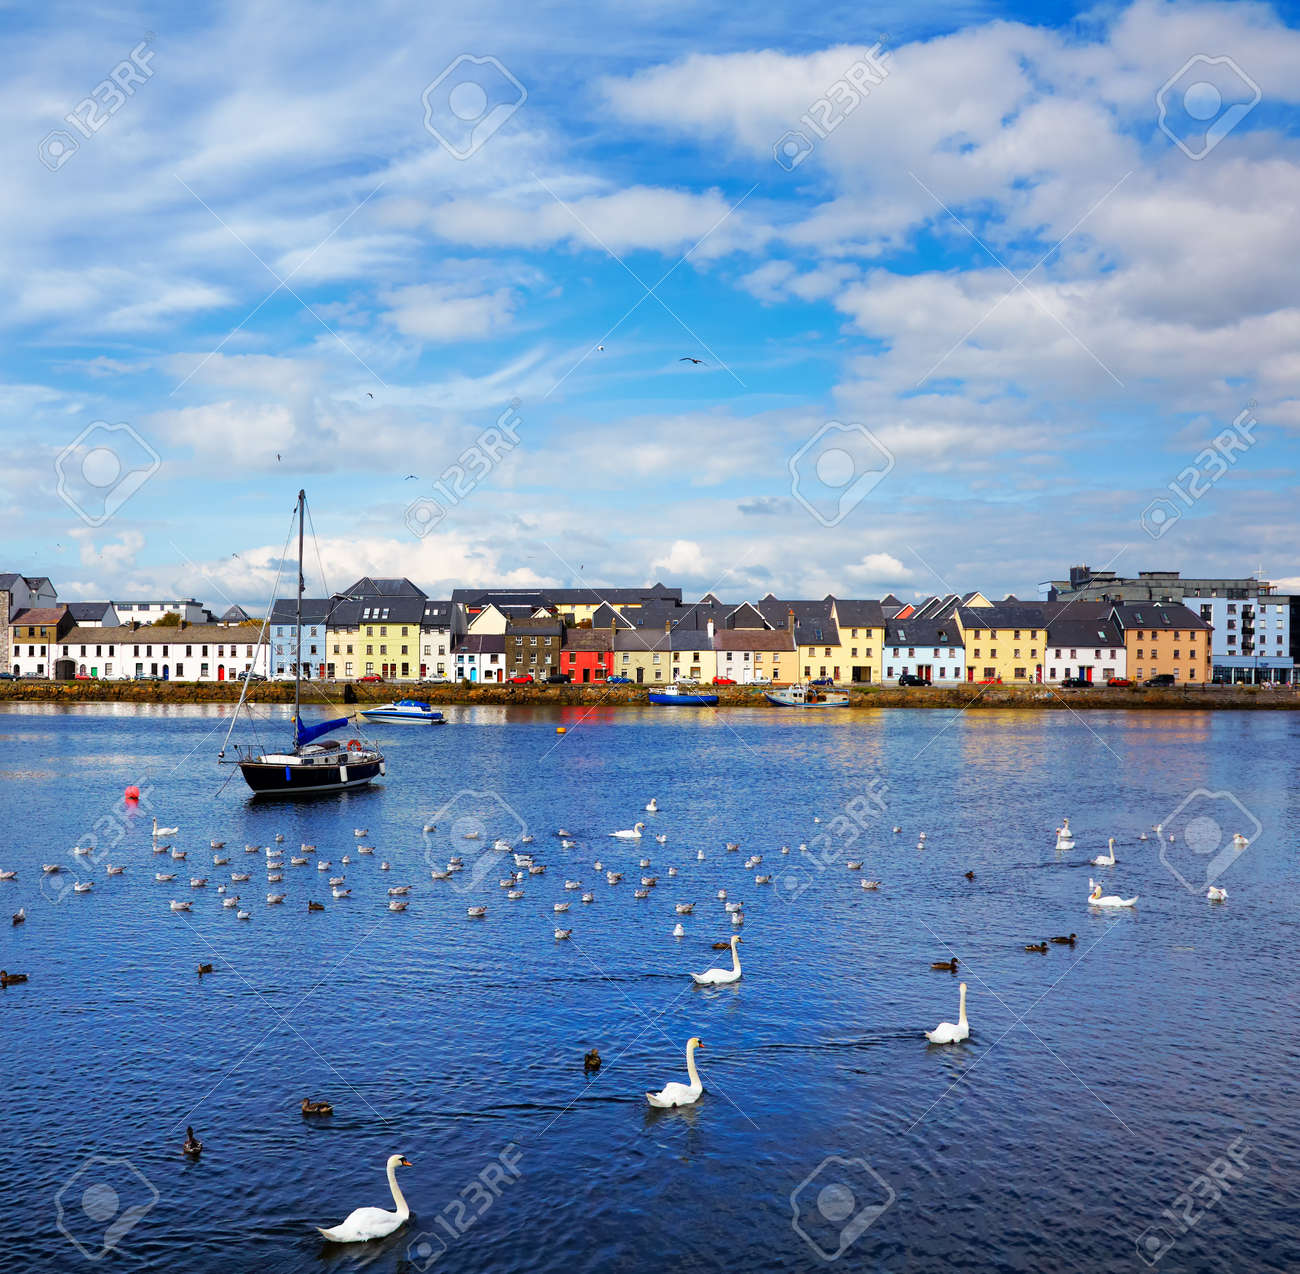 The Claddagh in Galway city during summertime, Ireland. Stock Photo - 12953444